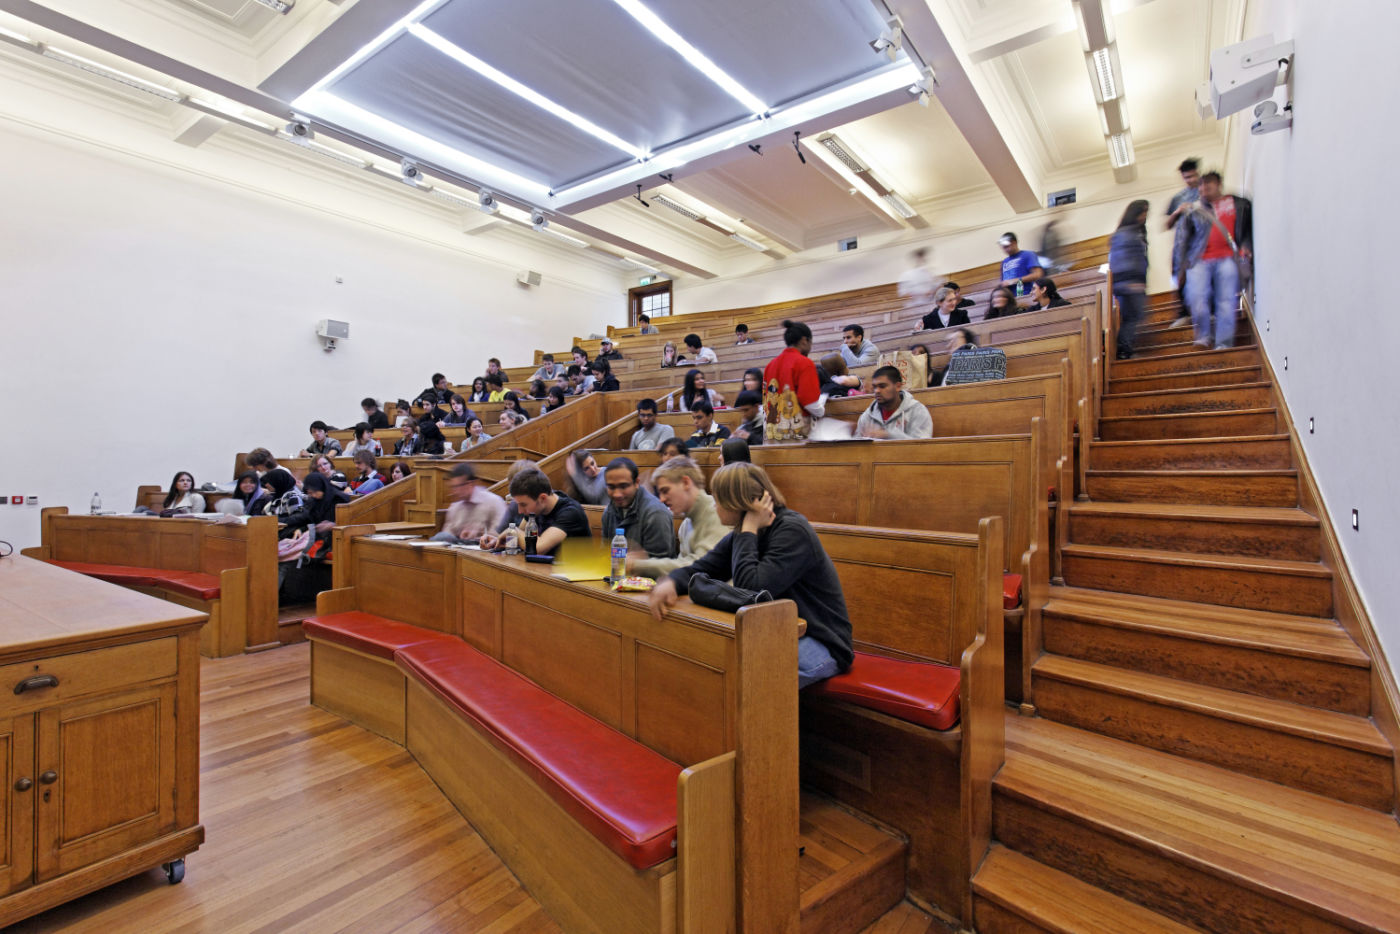 Students working in lecture theatre